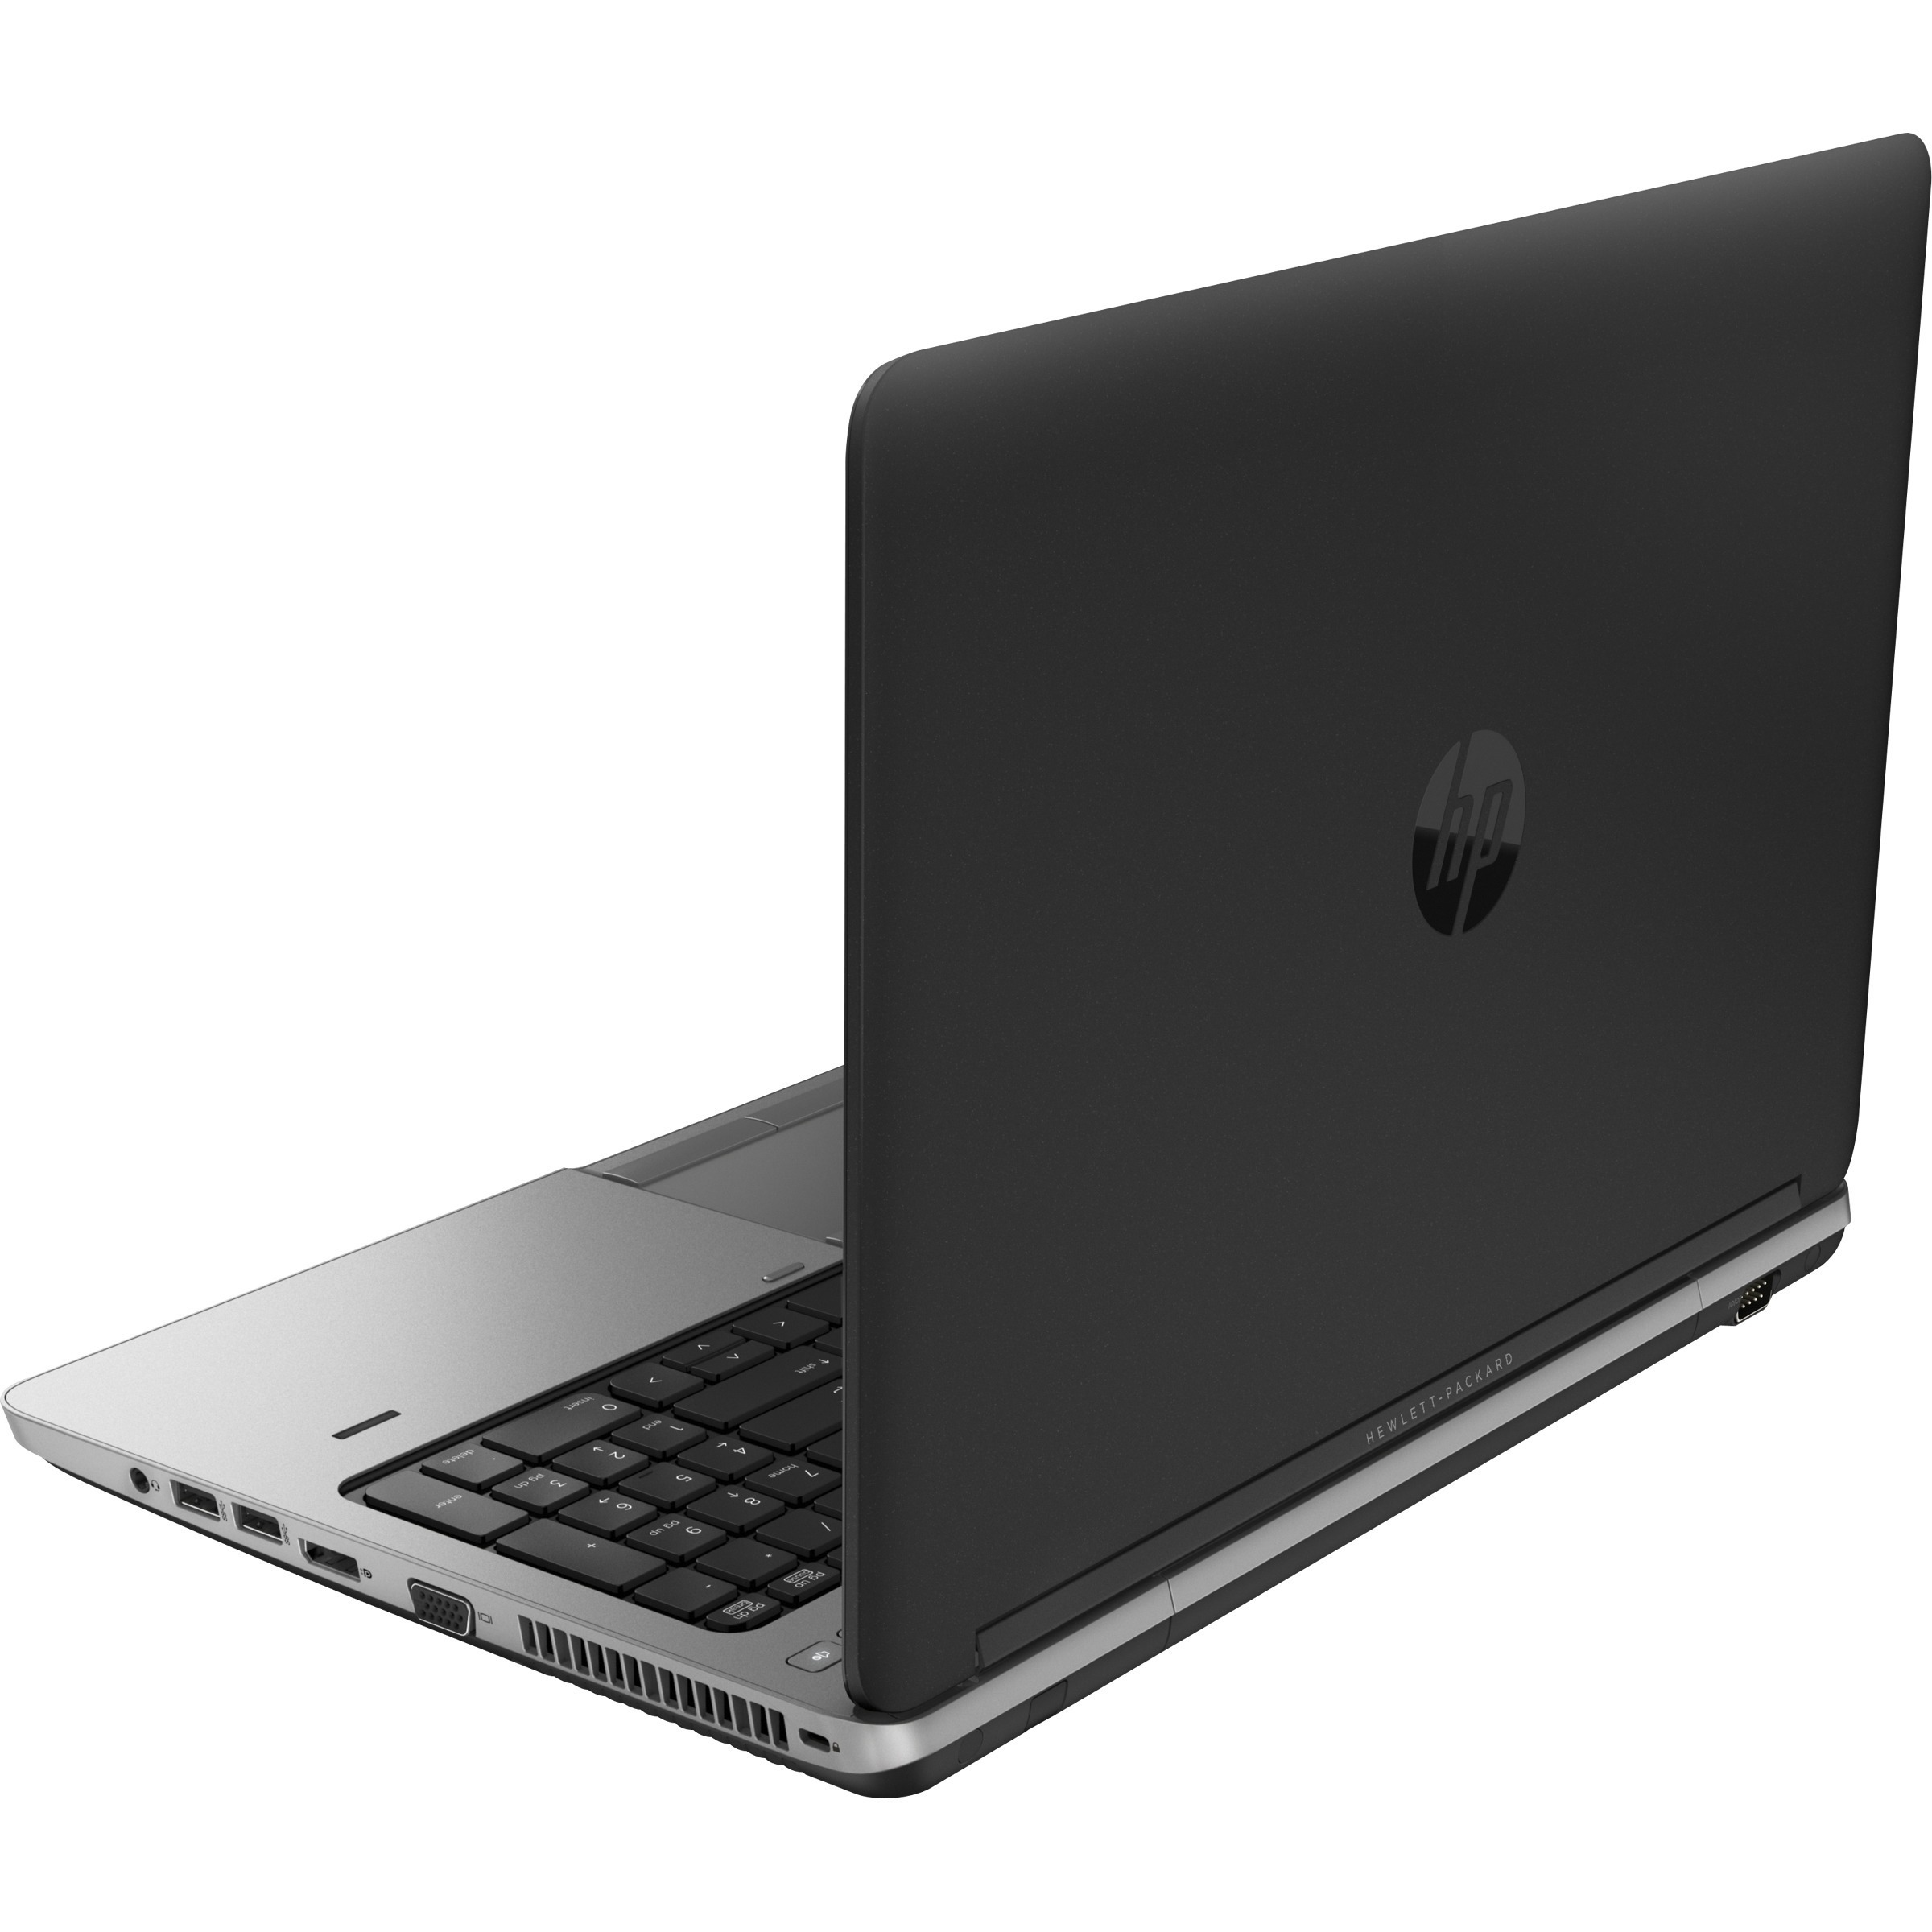 HP ProBook 640 G1 35.6 cm 14inch Notebook - Intel Core i5 i5-4210M 2.60 GHz